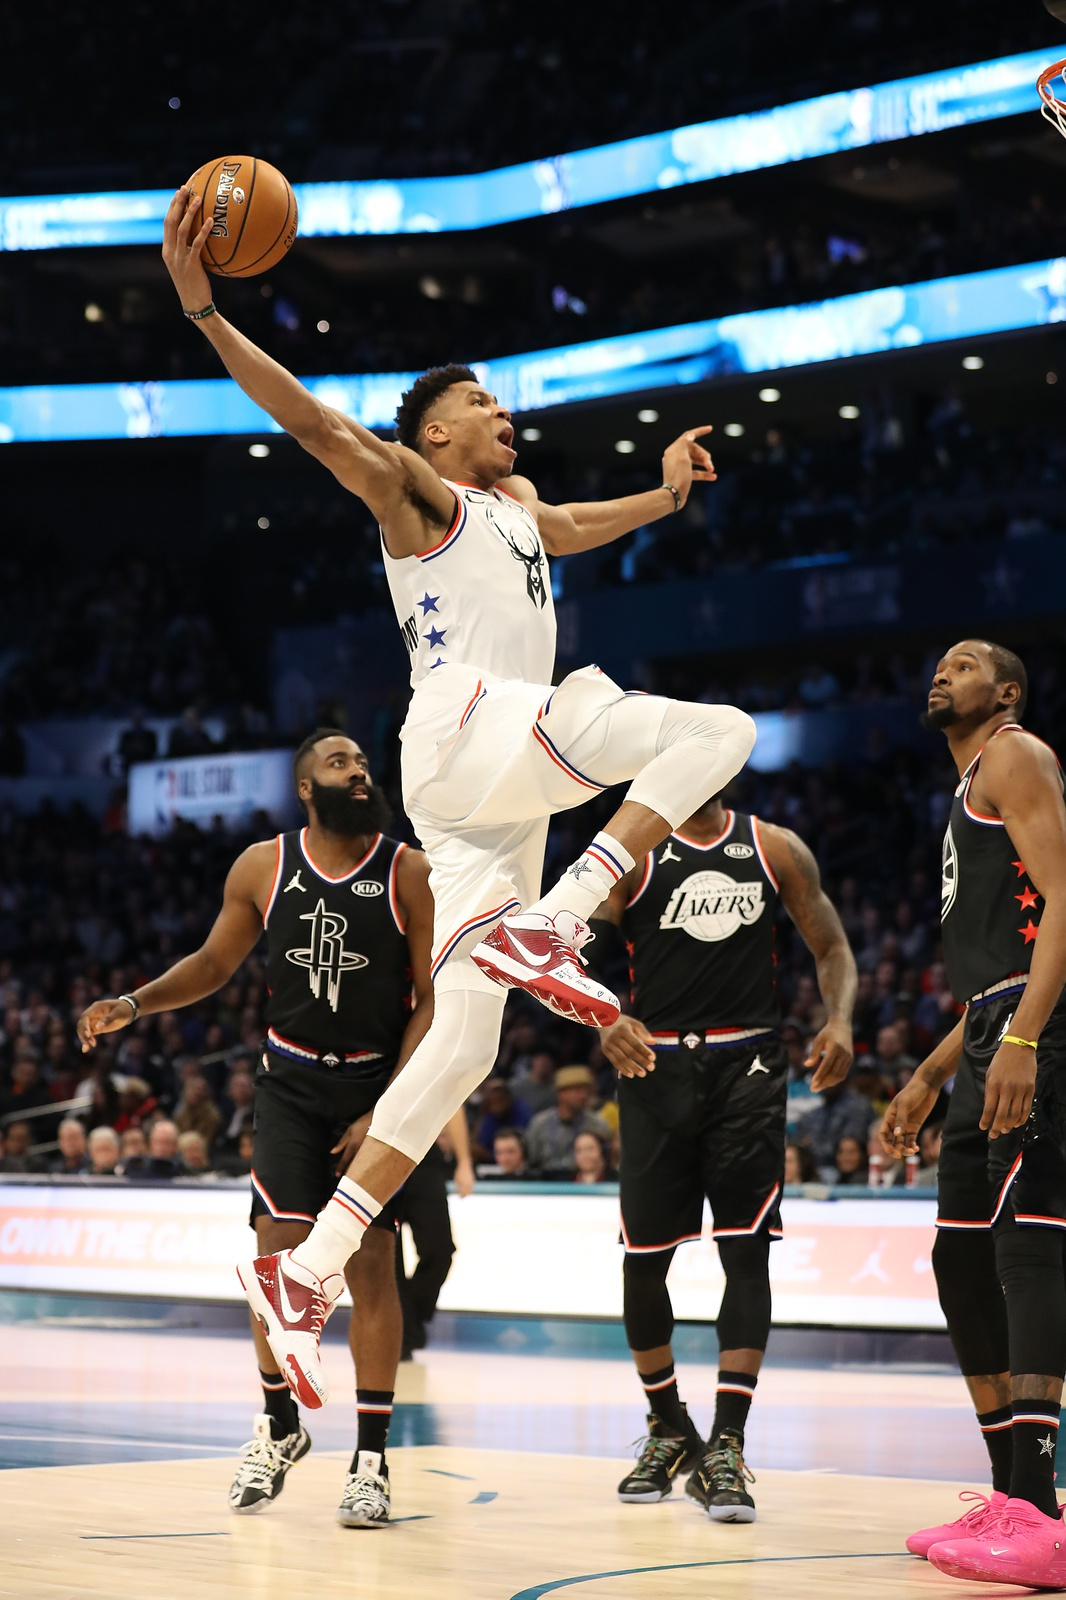 Giannis Antetokounmpo #34 of the Milwaukee Bucks and Team Giannis goes up to dunk against James Harden #13 of the Houston Rockets and Kevin Durant #35 of the Golden State Warriors and Team LeBron in the fourth quarter during the NBA All-Star game as part of the 2019 NBA All-Star Weekend at Spectrum Center on February 17, 2019 in Charlotte, North Carolina. Team LeBron won 178-164.